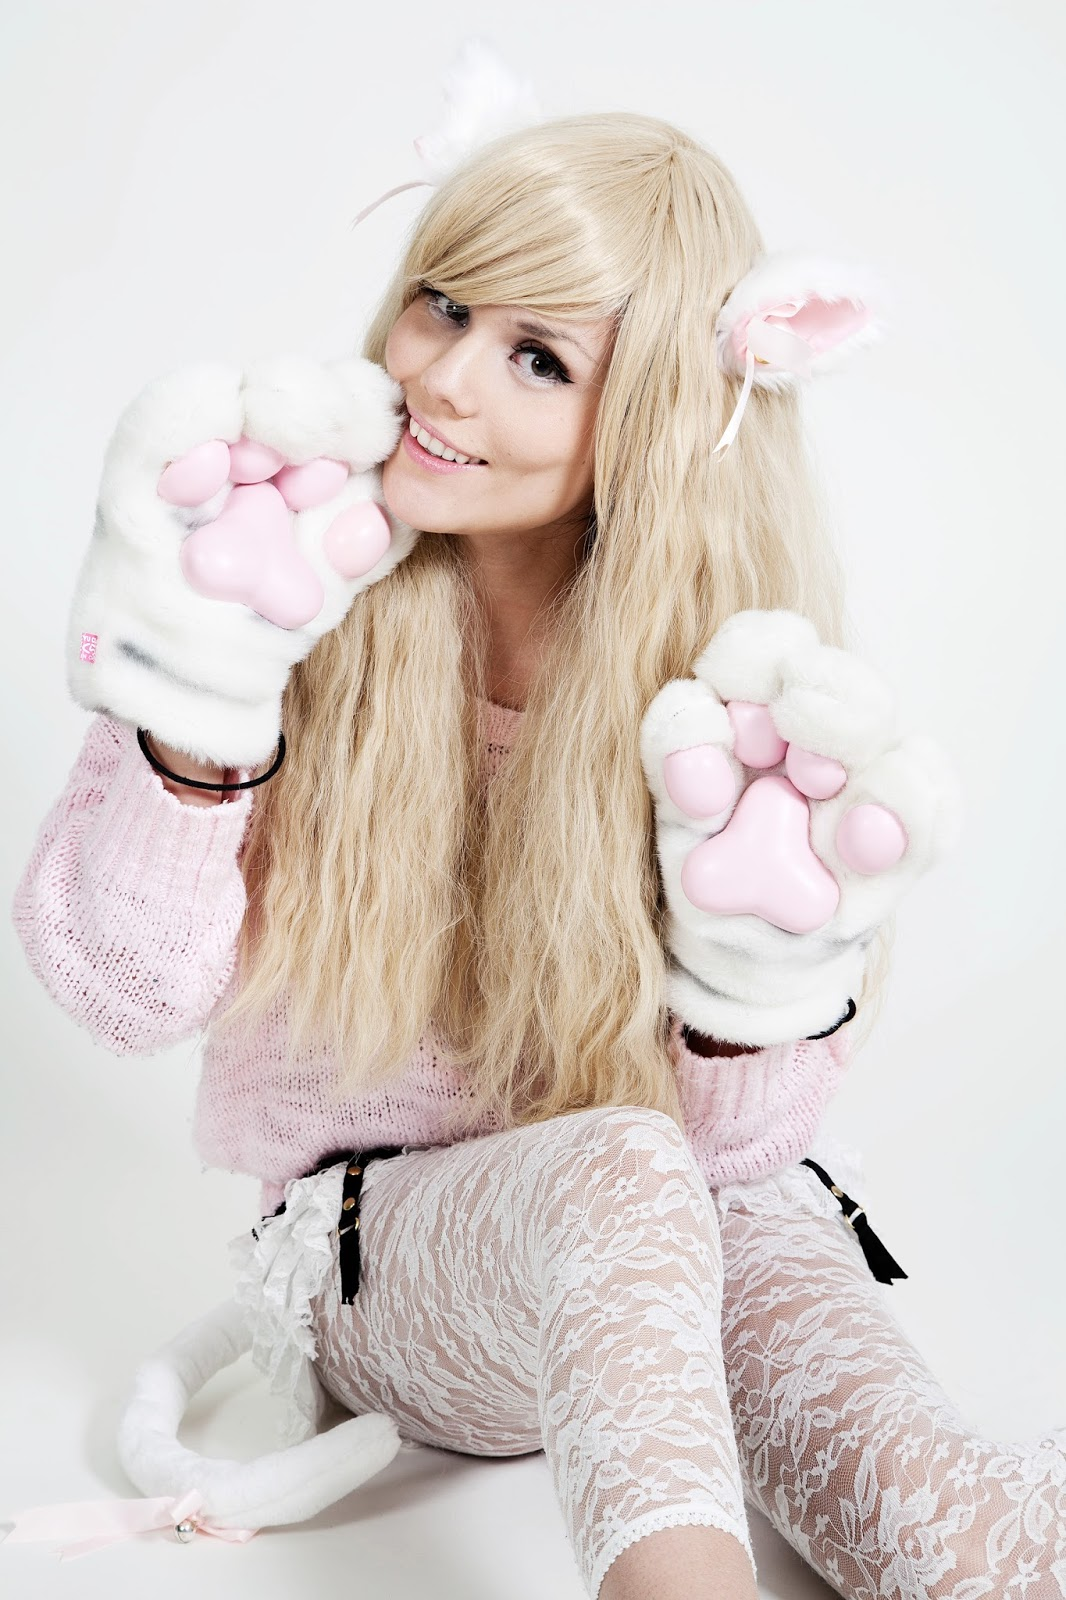 Neko Cosplay - Me with blonde hair |CandyAbuse